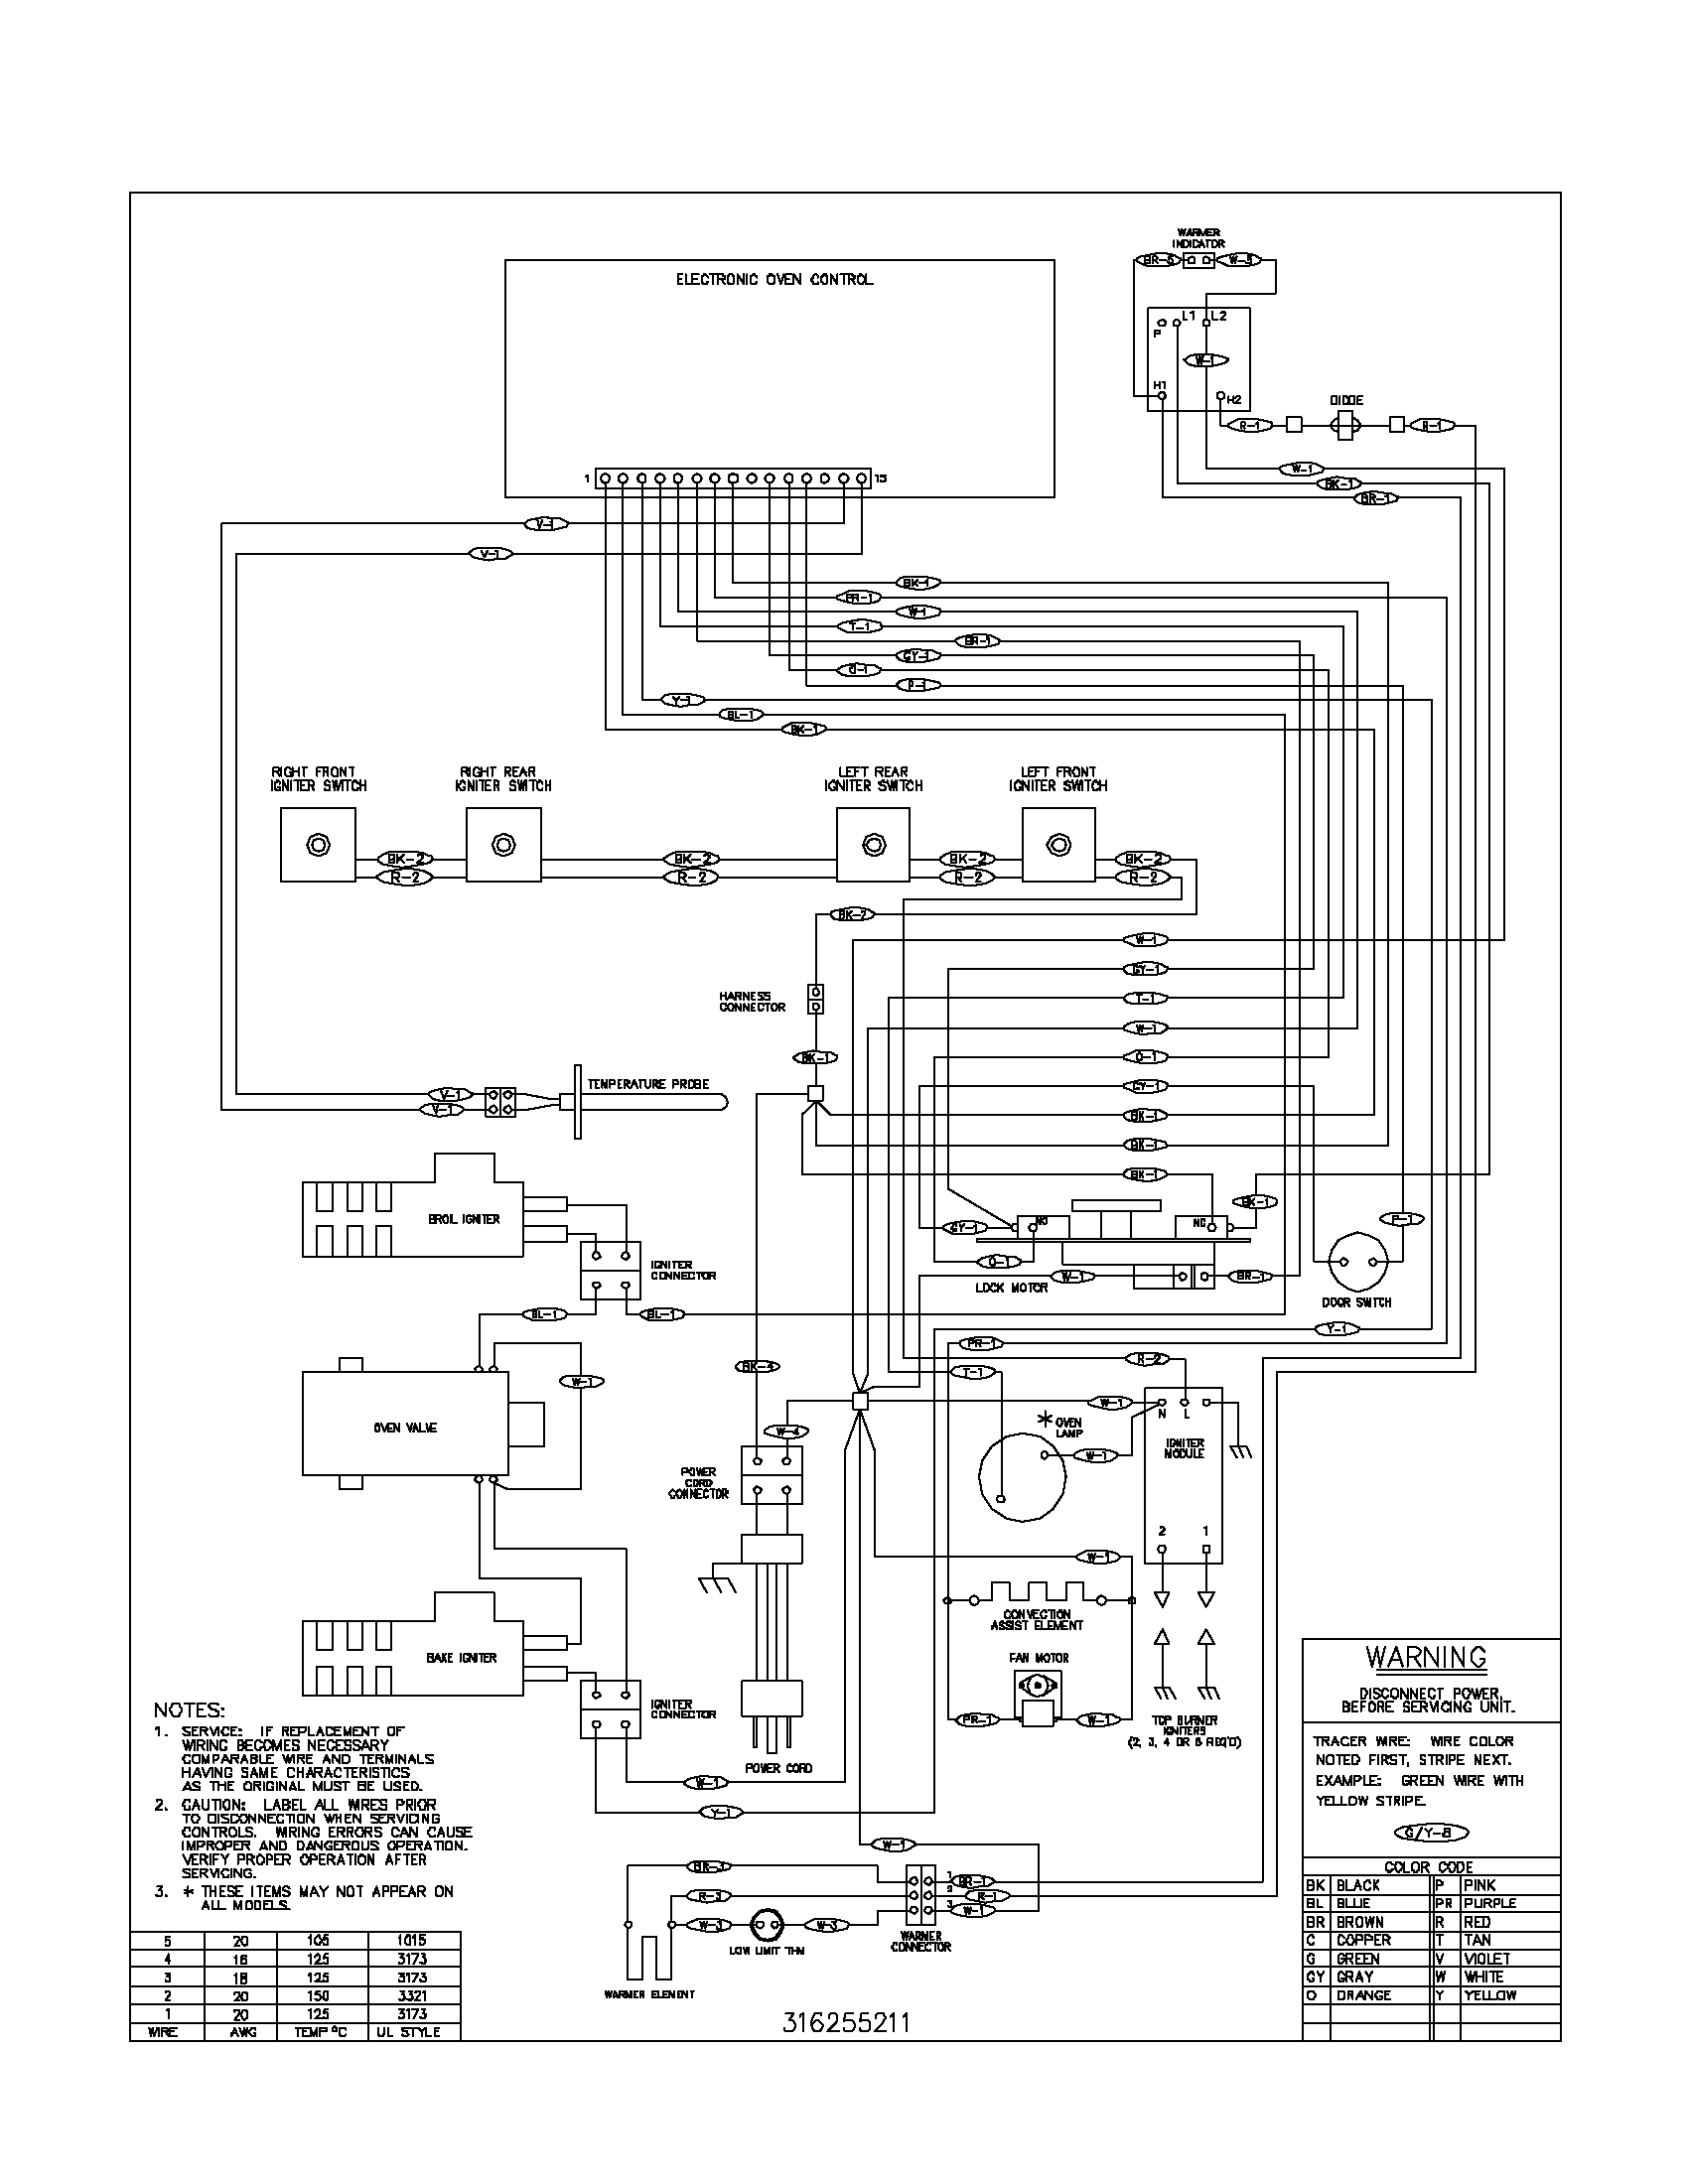 wiring diagram parts?resize=665%2C861 diagrams 750500 white knight tumble dryer wiring diagram tumble white knight tumble dryer wiring diagram at bayanpartner.co